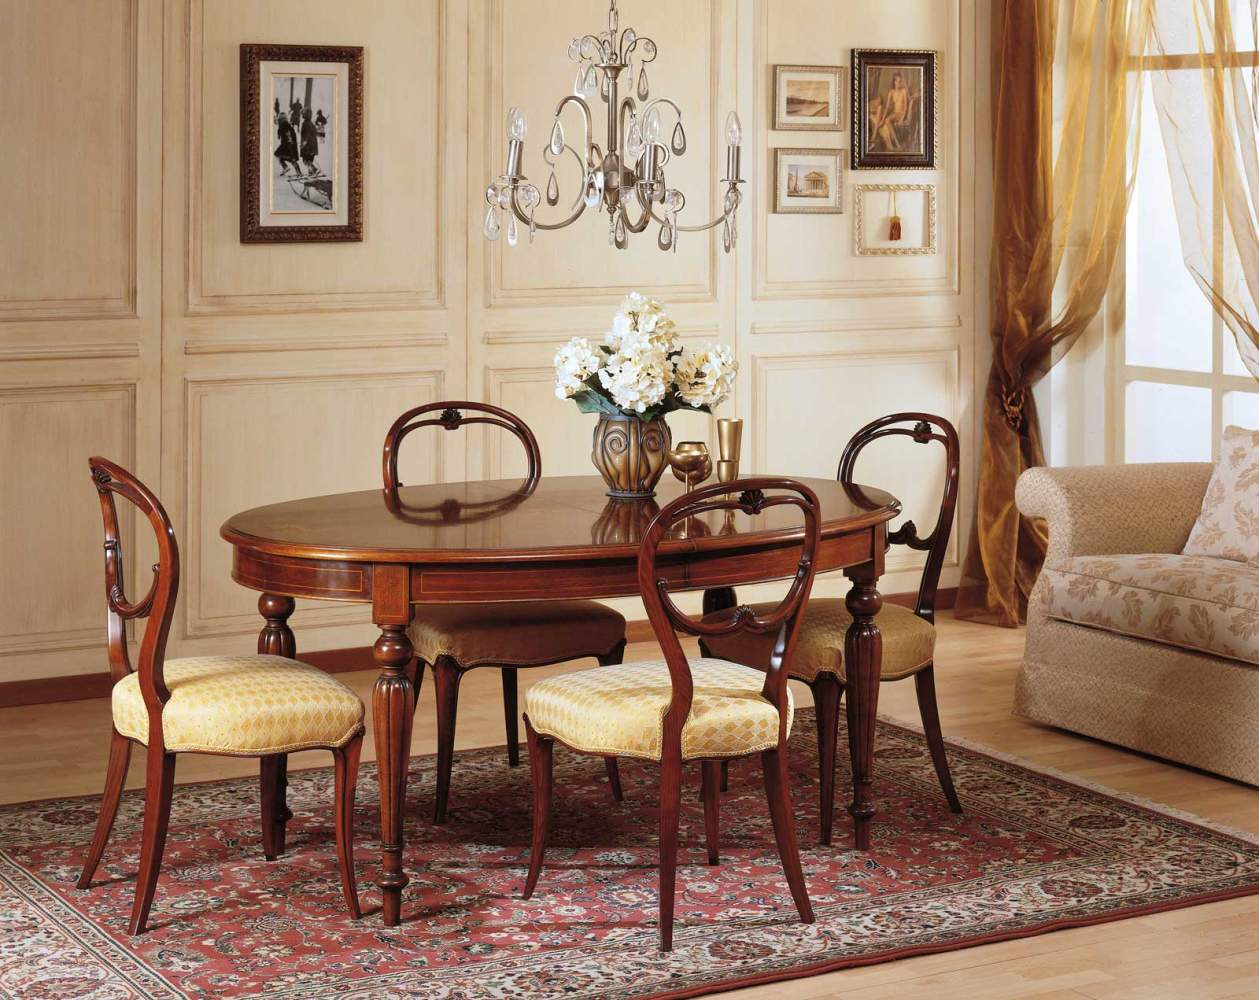 Dining room french 19th century